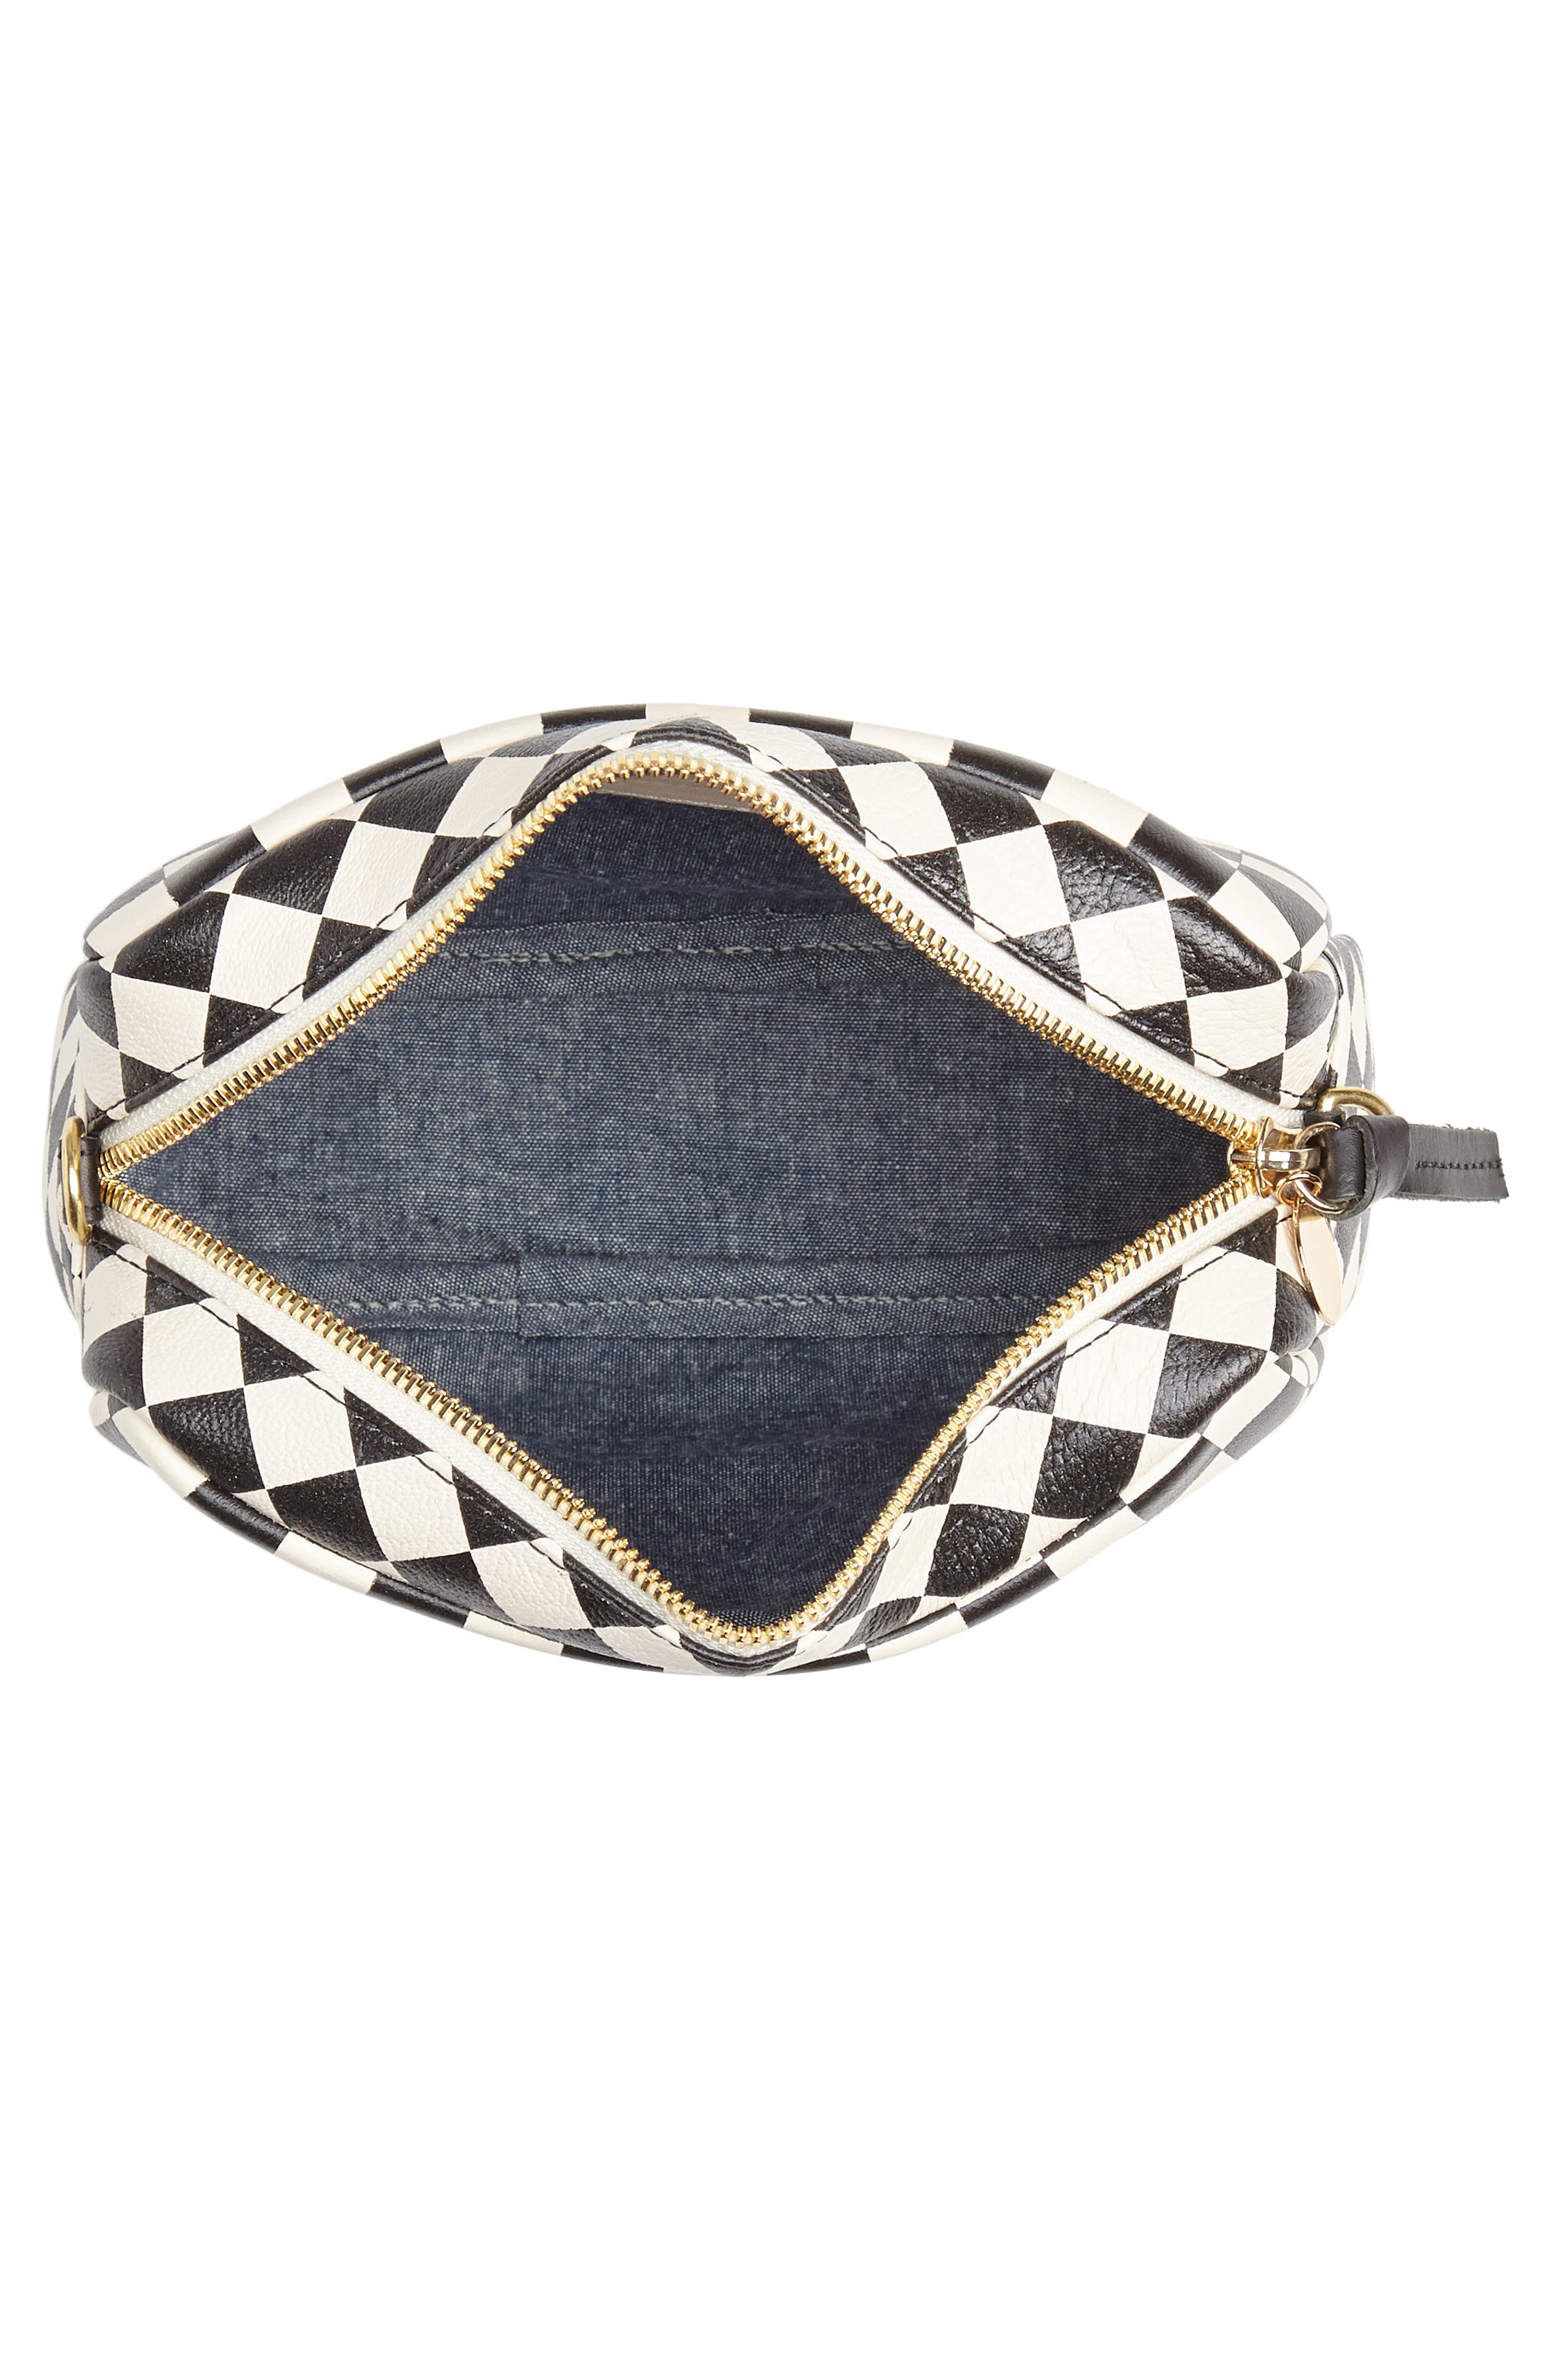 Midi Sac Check Leather Shoulder Bag,                             Alternate thumbnail 4, color,                             CREAM/ BLACK CHECKERS